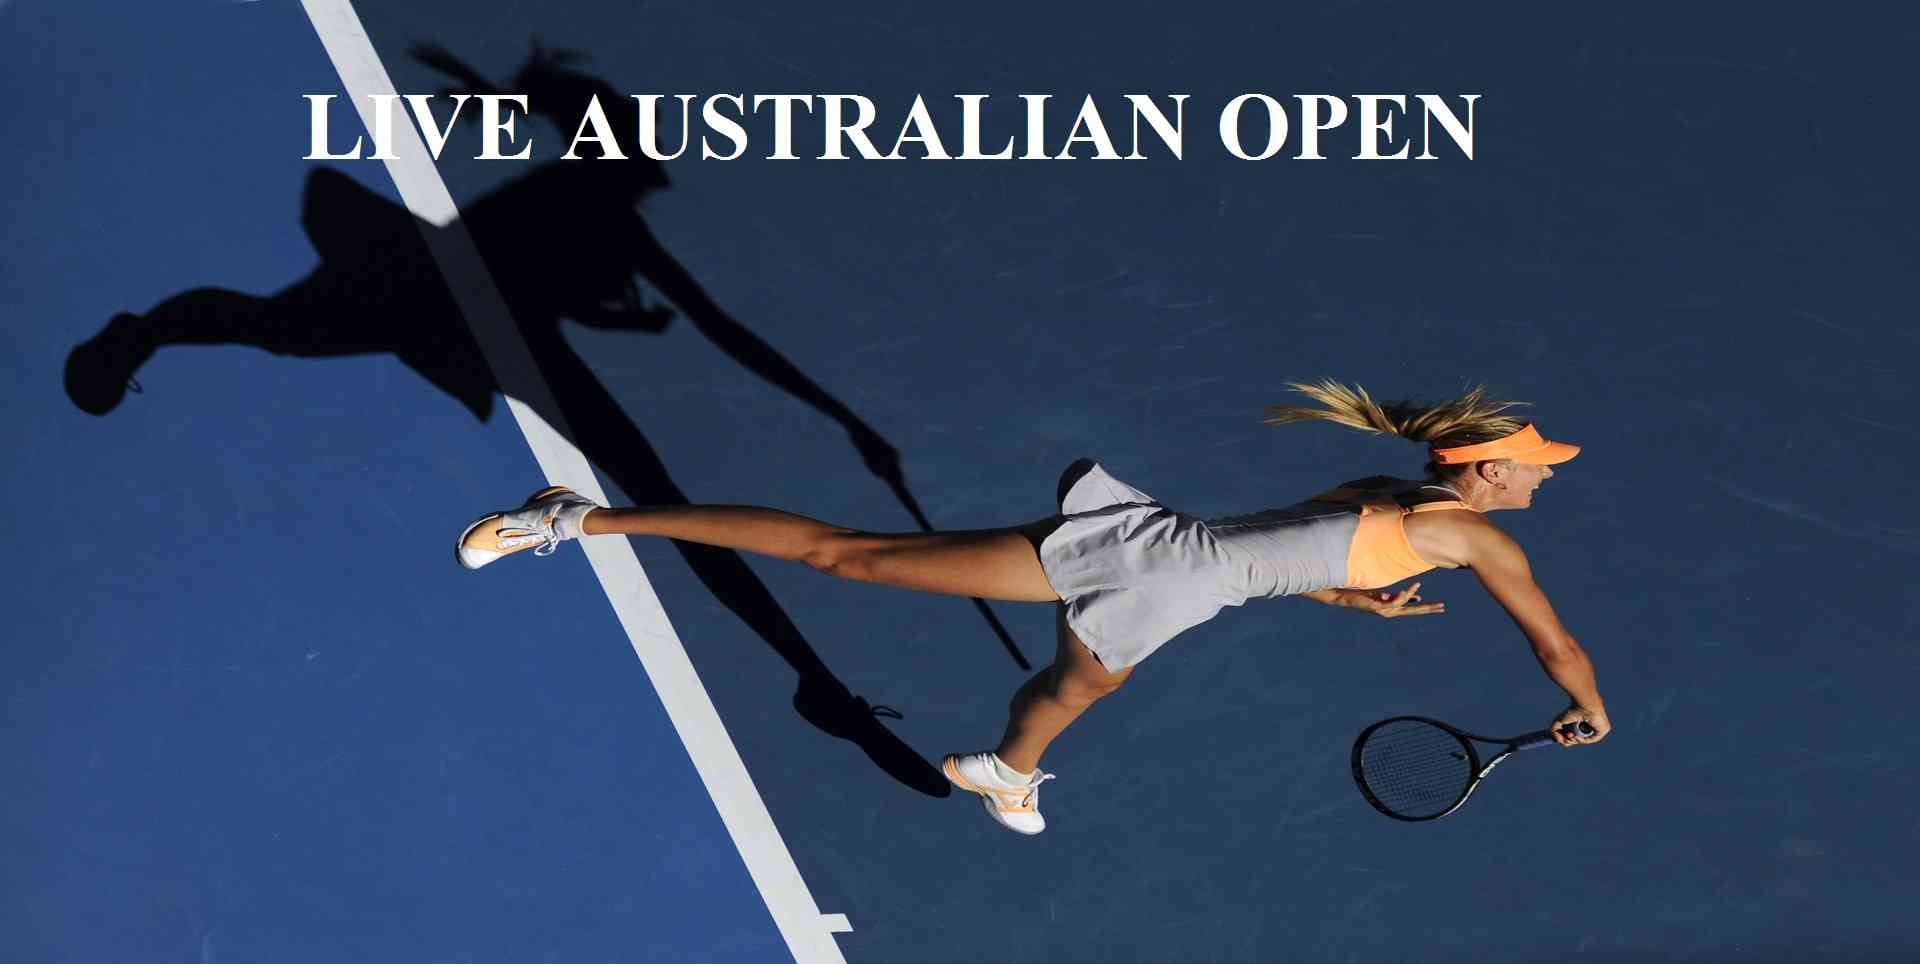 2017 Australian Open Tennis Opening Ceremony Live Stream